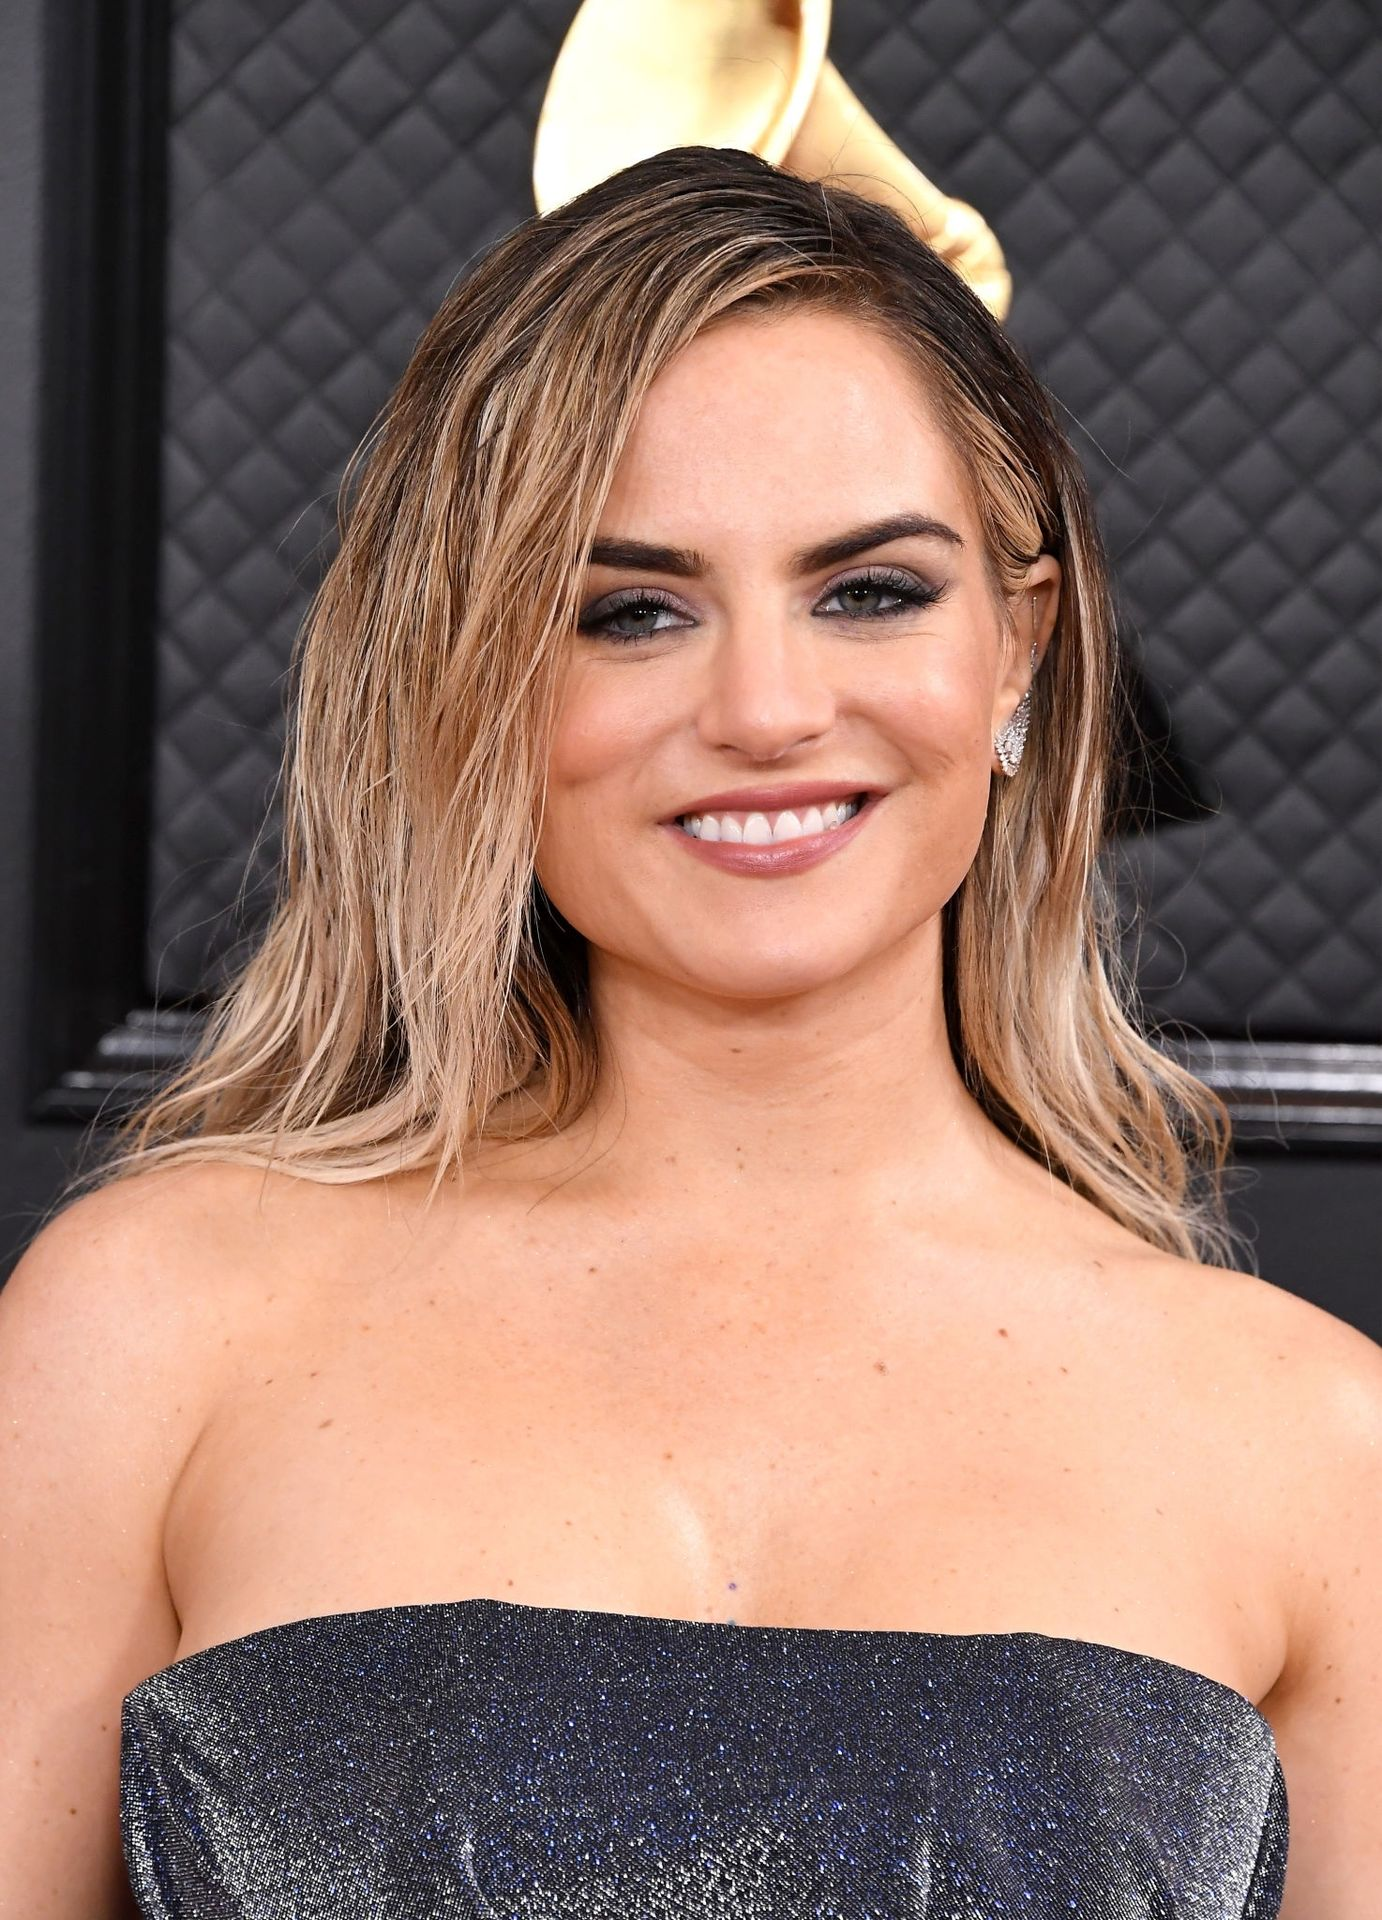 Jojo Shows Her Legs And Cleavage At The 62nd Annual Grammy Awards 0004